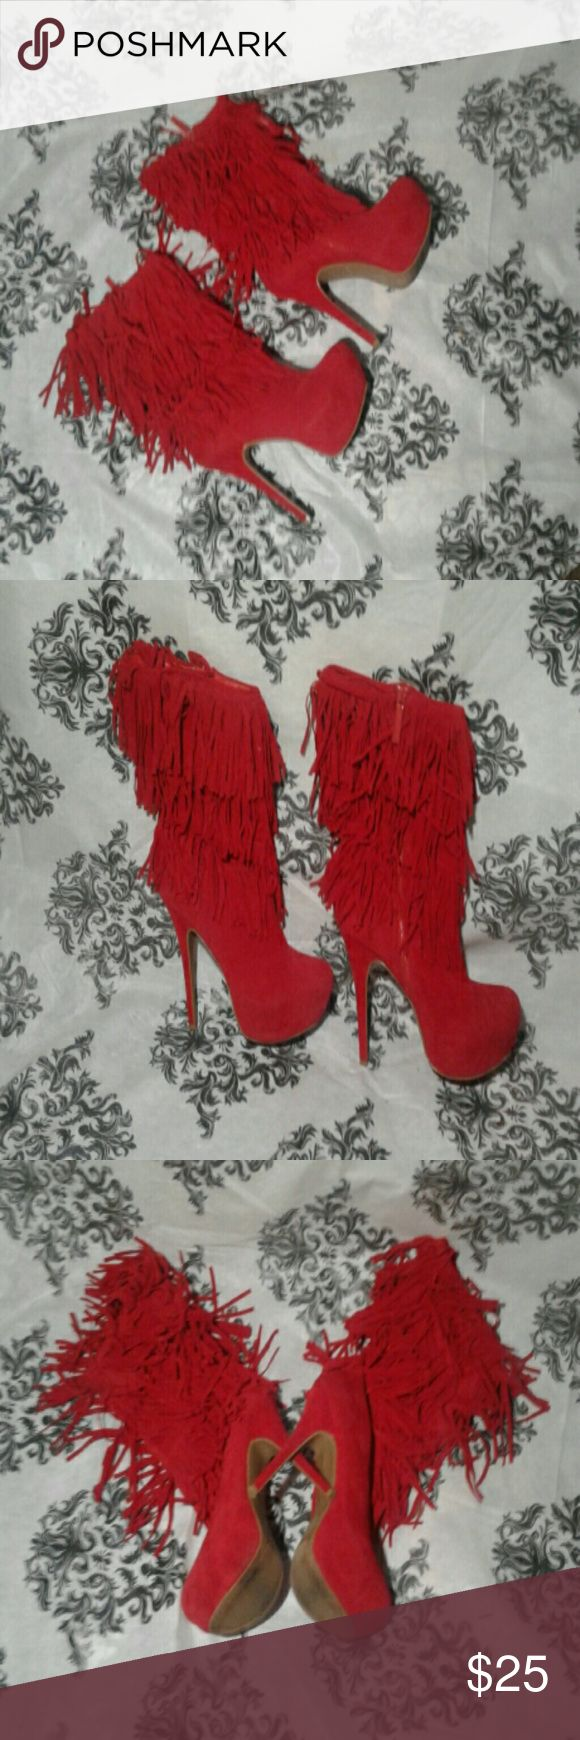 ONCE LOVED ALBA RED PLATFORM  HEELS ONCE LOVED ALBA RED PLATFORM HEELS WITH FRINGE GREAT CONDITION WORN ONCE THESE BOYS ARE TAKING SEXY TO A WHOLE NOTHER LEVEL DEFINITELY AN EYE CATCHER Alba Shoes Platforms